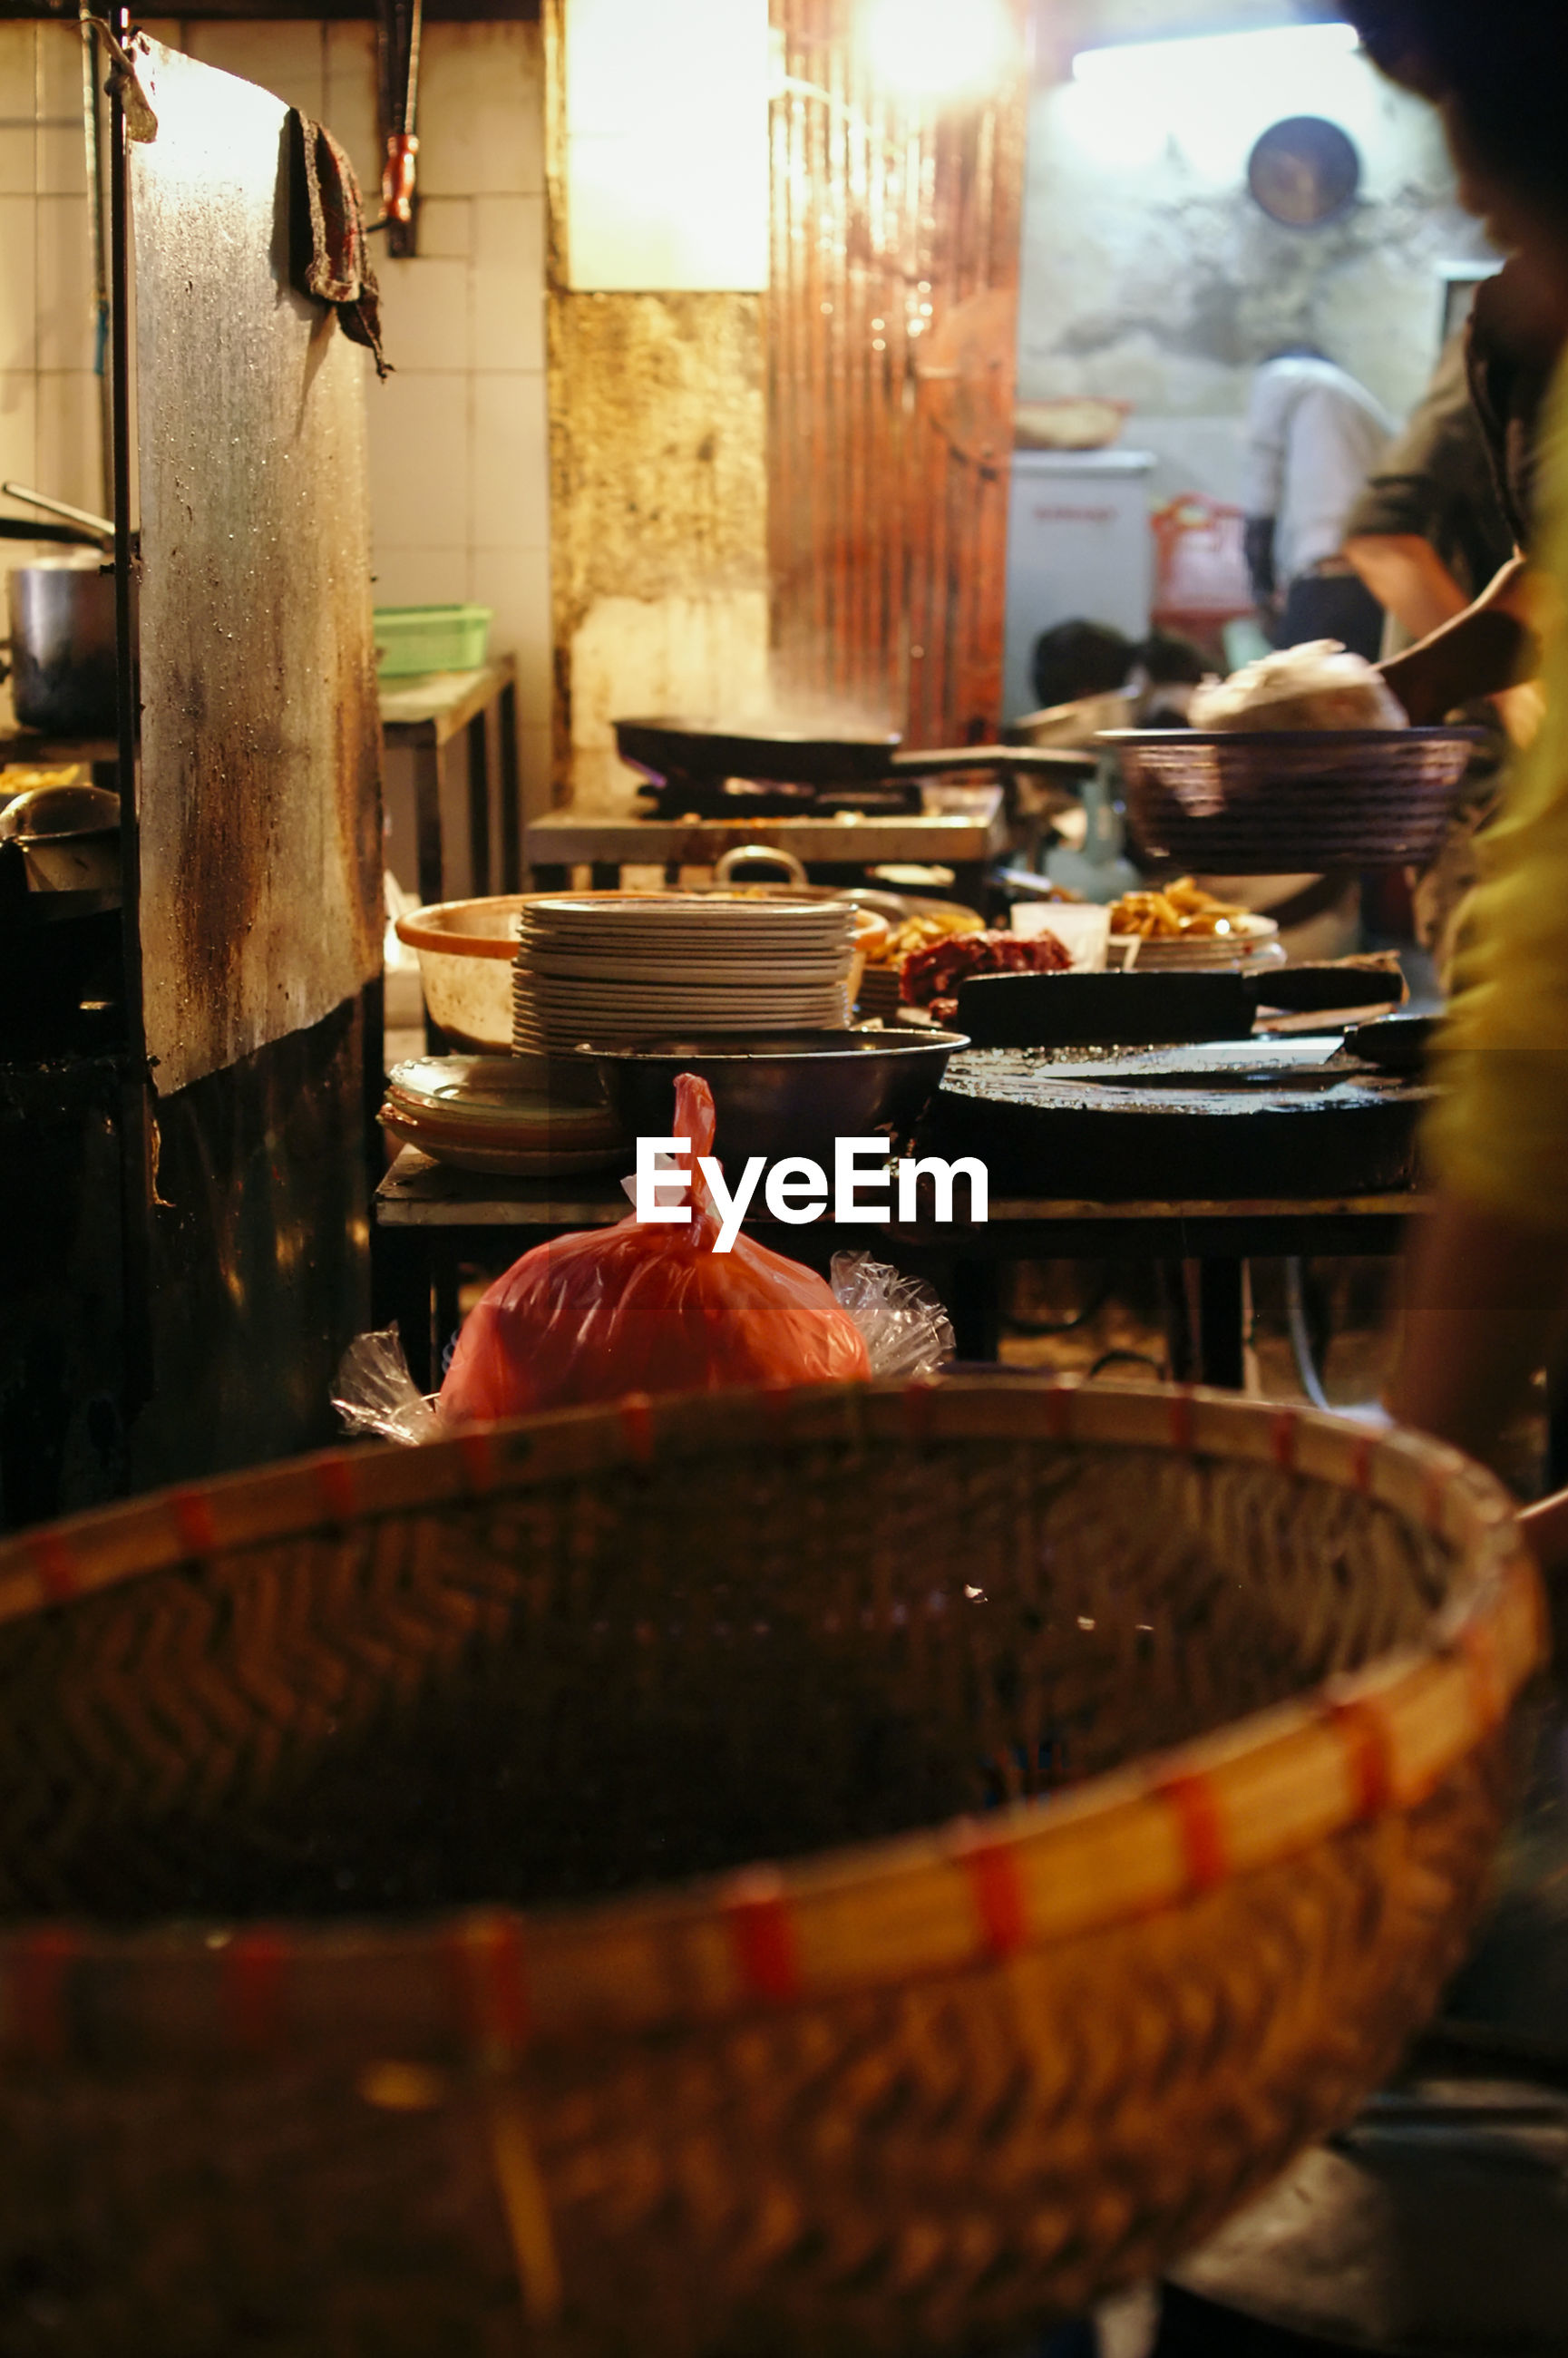 Close-up of basket with food in background